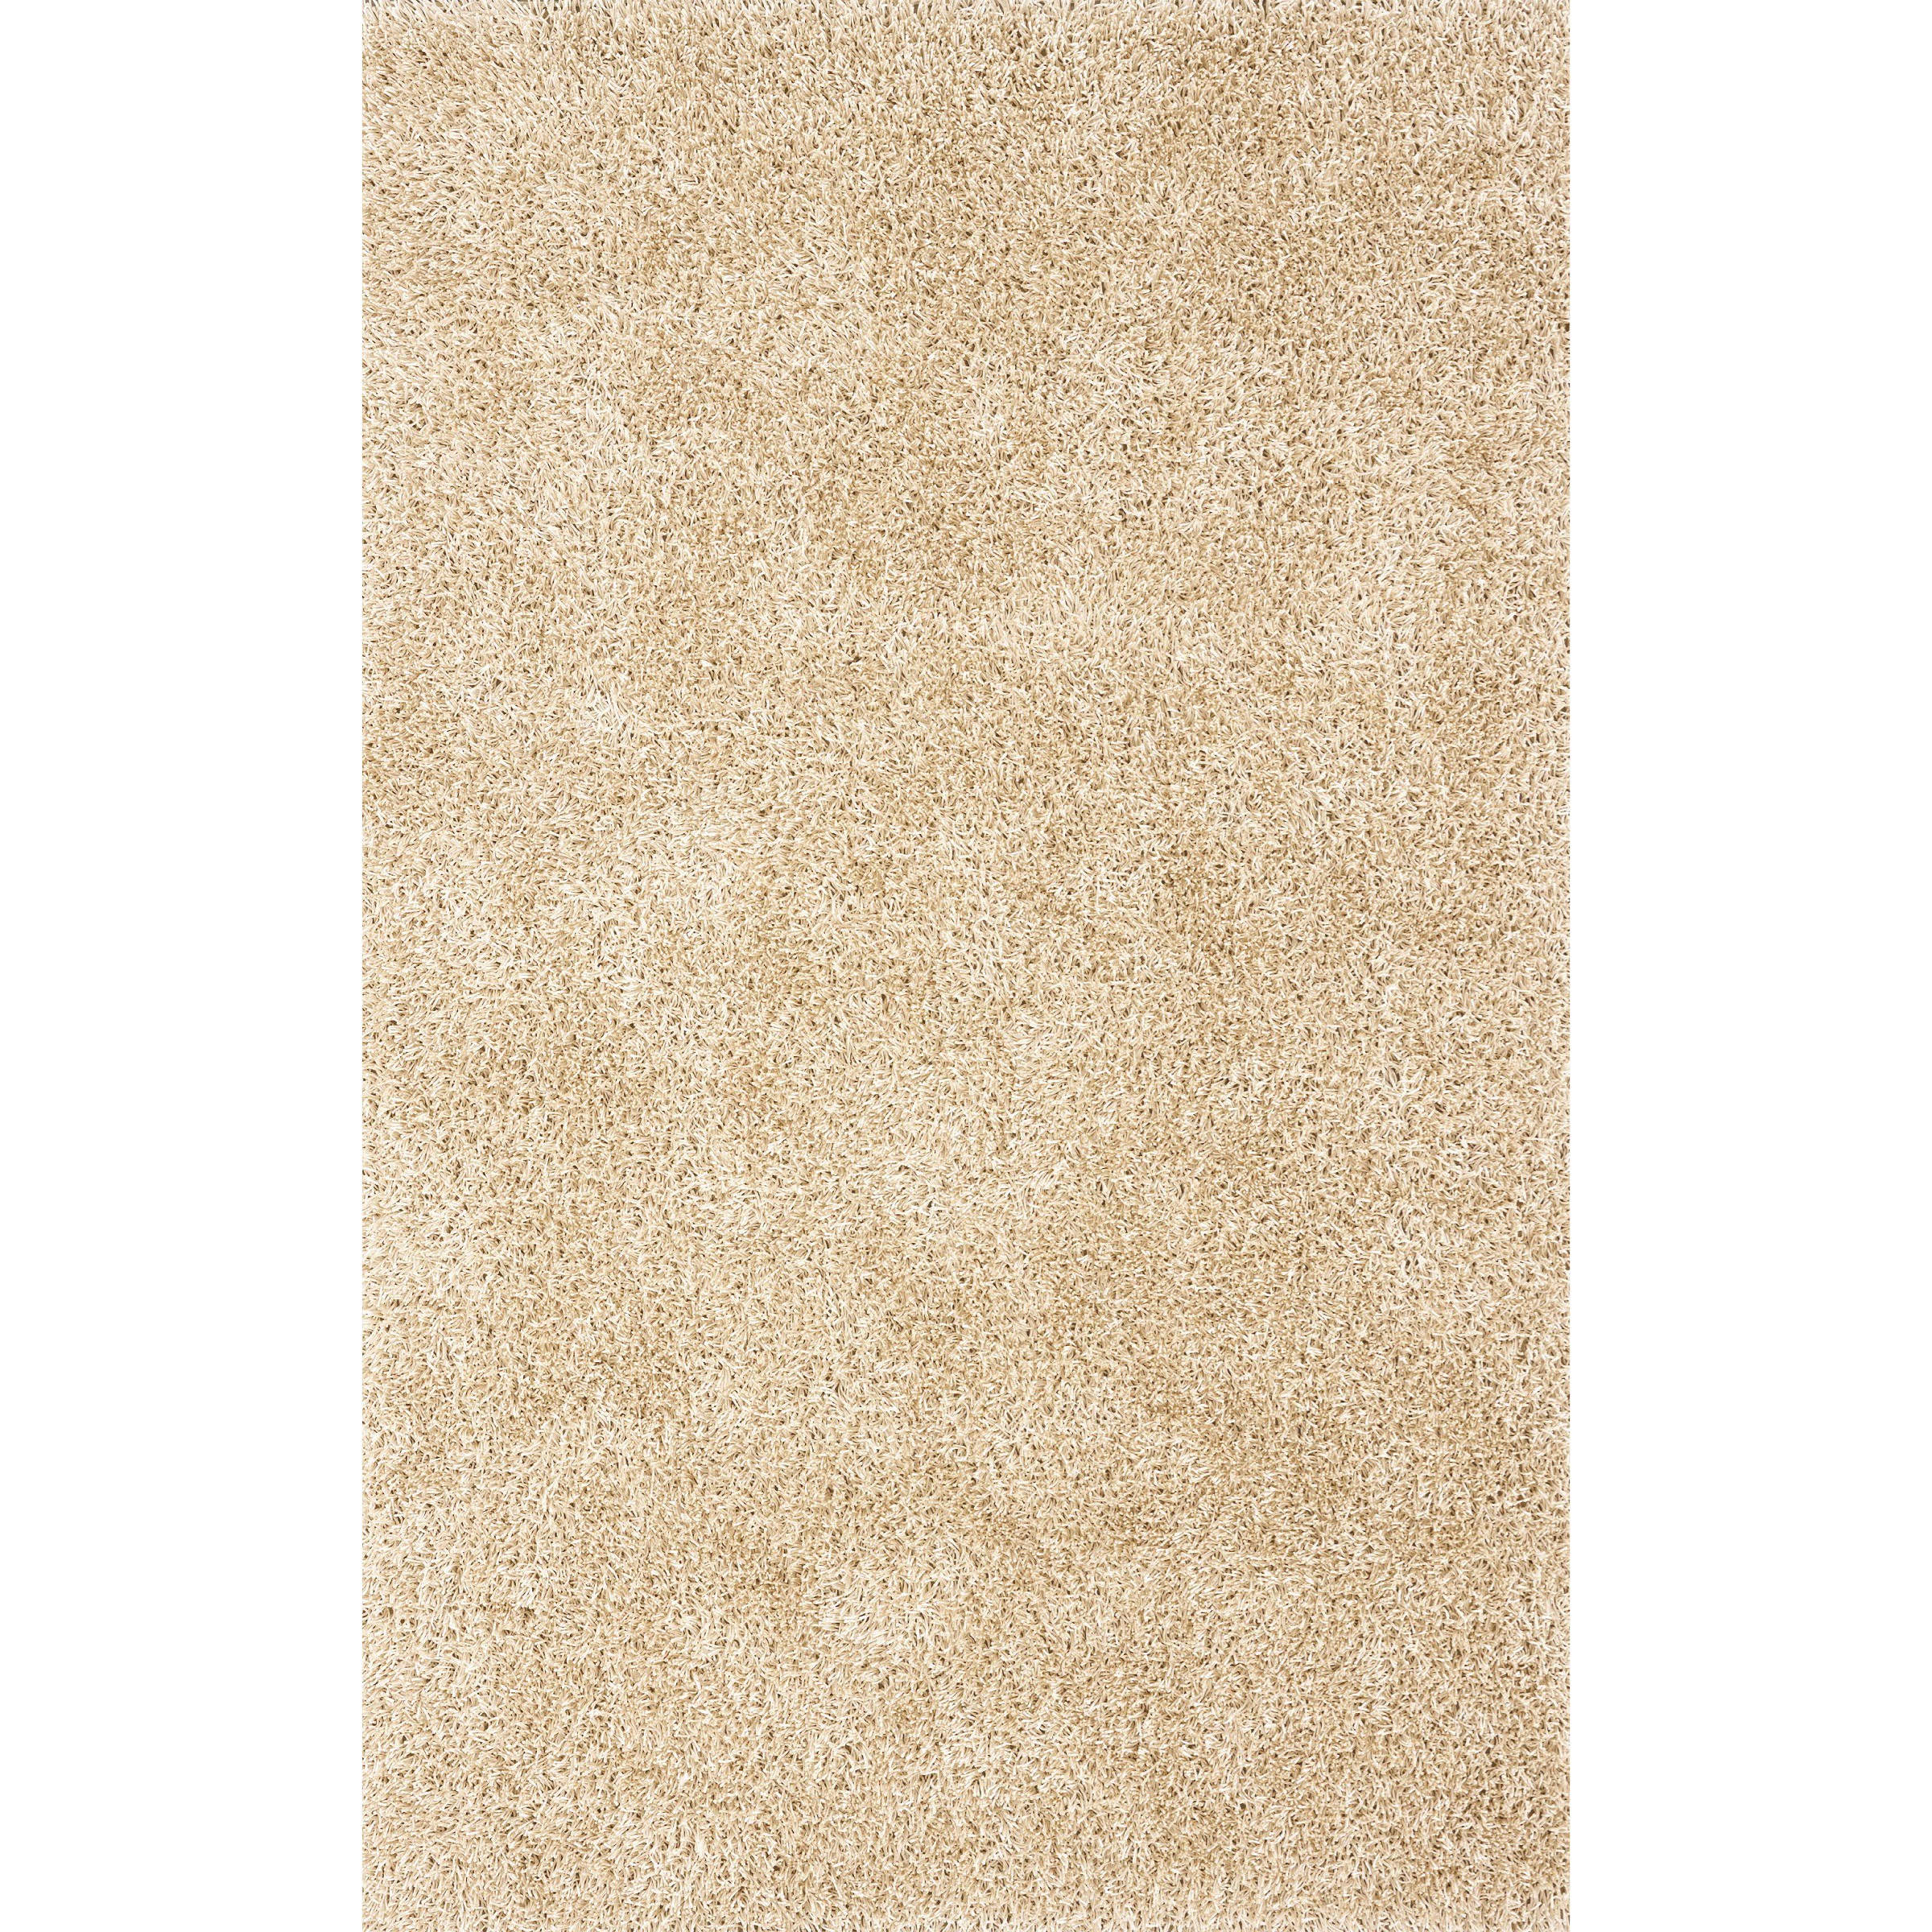 """Illusions Ivory 3'6""""X5'6"""" Rug by Dalyn at Sadler's Home Furnishings"""